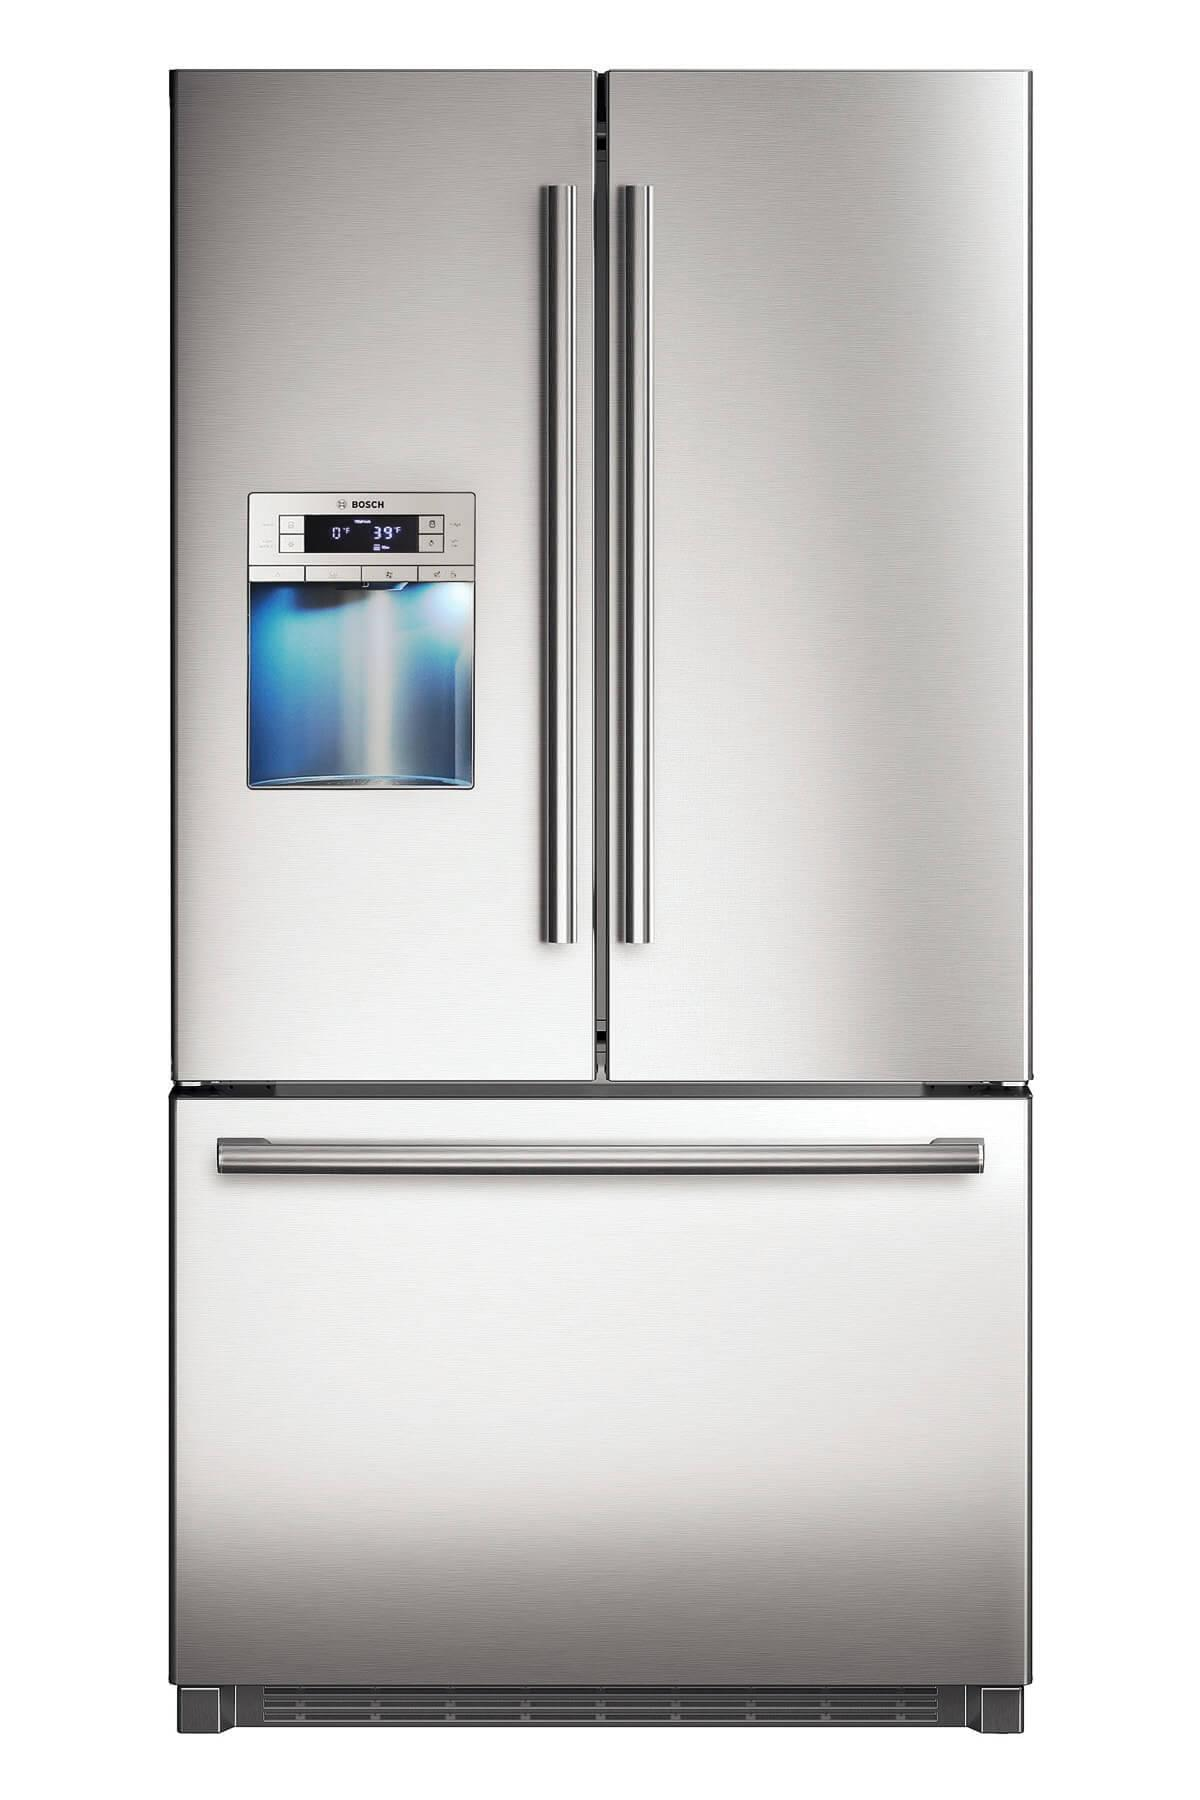 Bosch Side By Side Refrigerator Problems Shapeyourminds Com